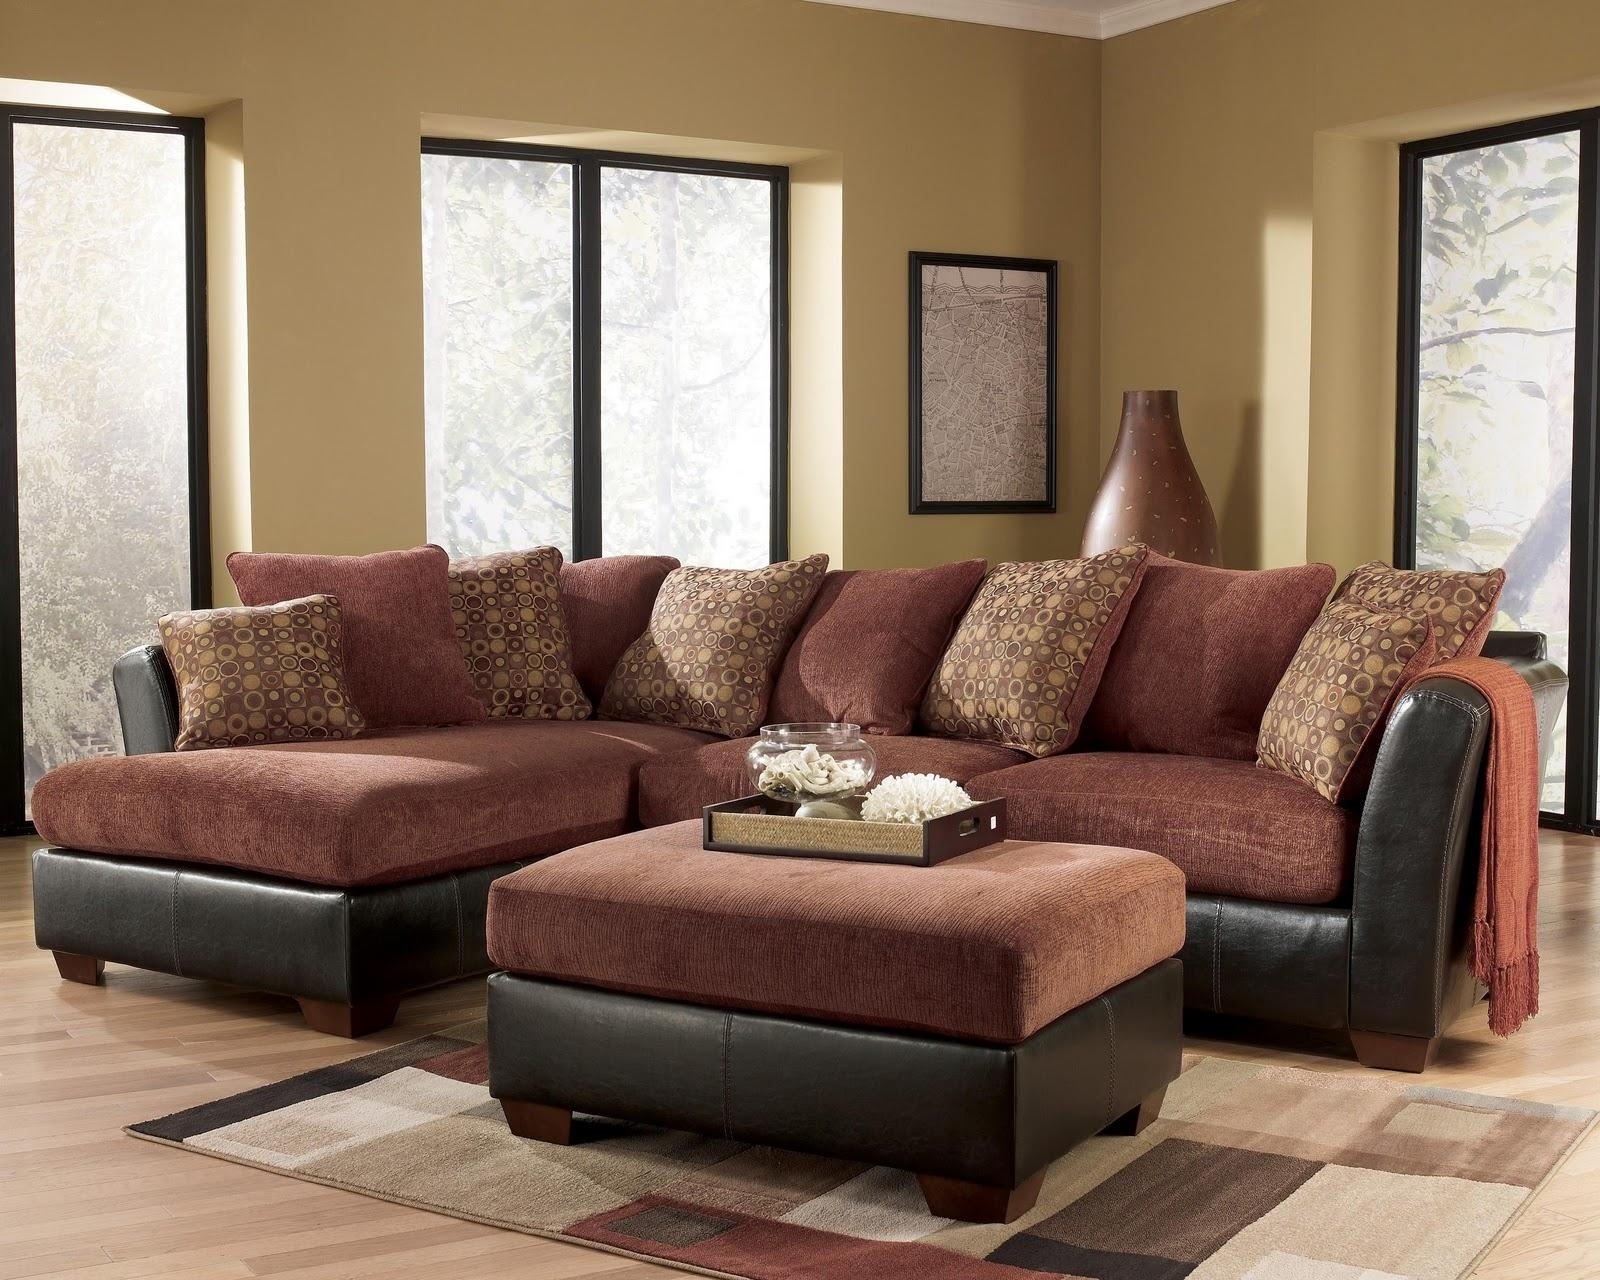 Sofas Center : Singular Ashleyniture Sectional Sofas Photo Ideas Throughout Ashley Furniture Corduroy Sectional Sofas (Image 19 of 20)